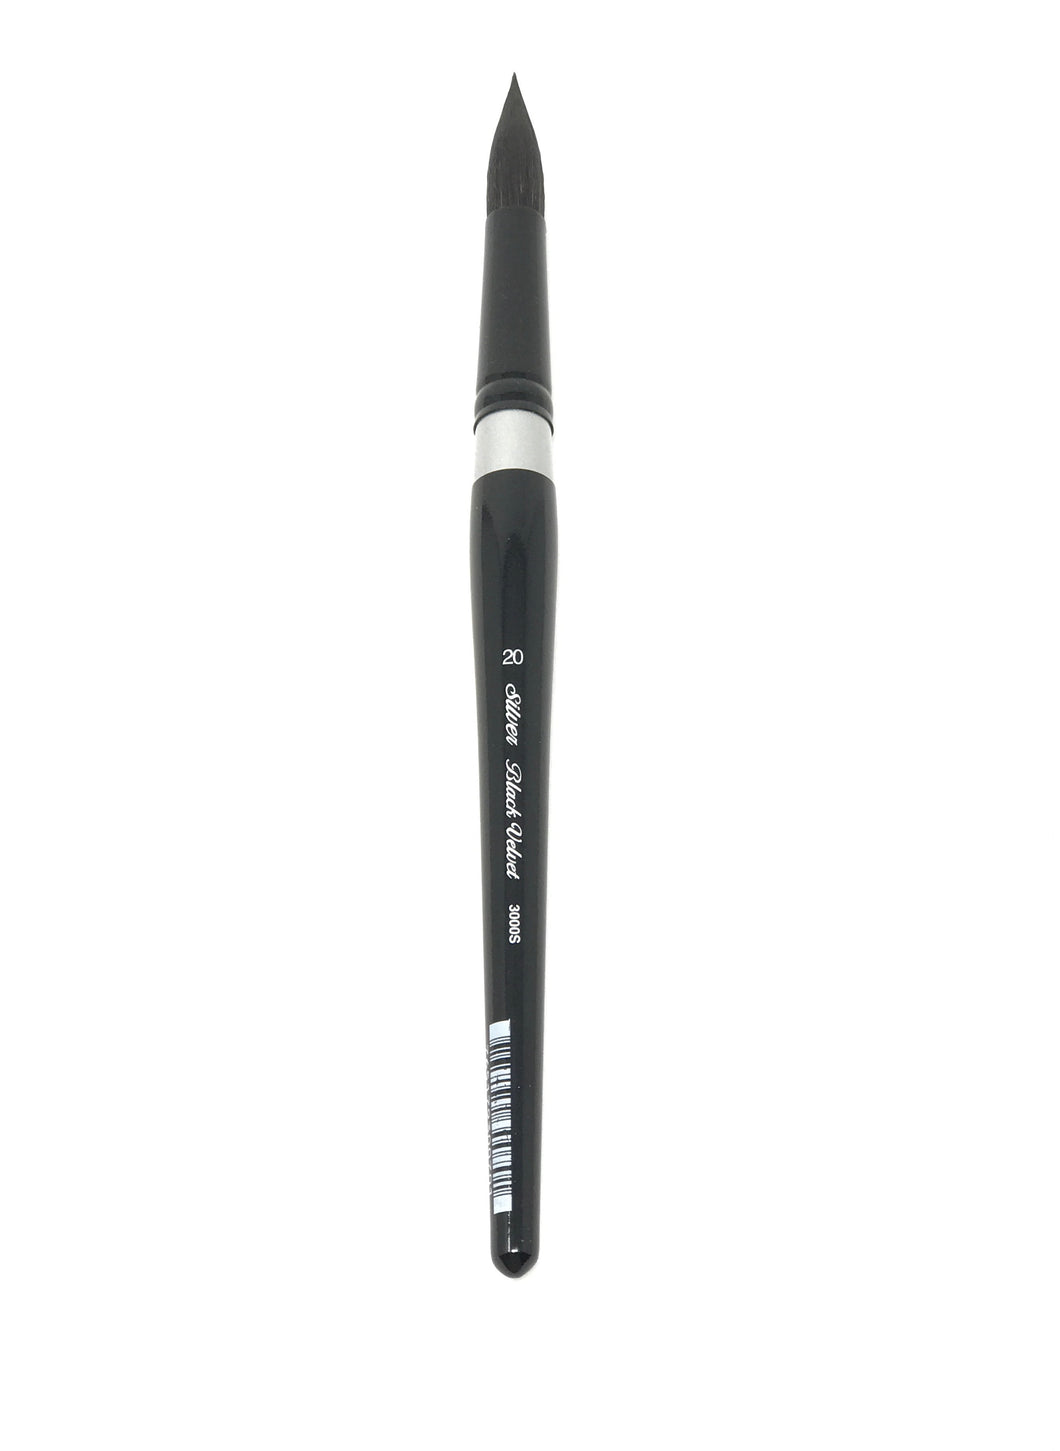 Black Velvet Size 20 Round - Watercolor Brushes S3000S